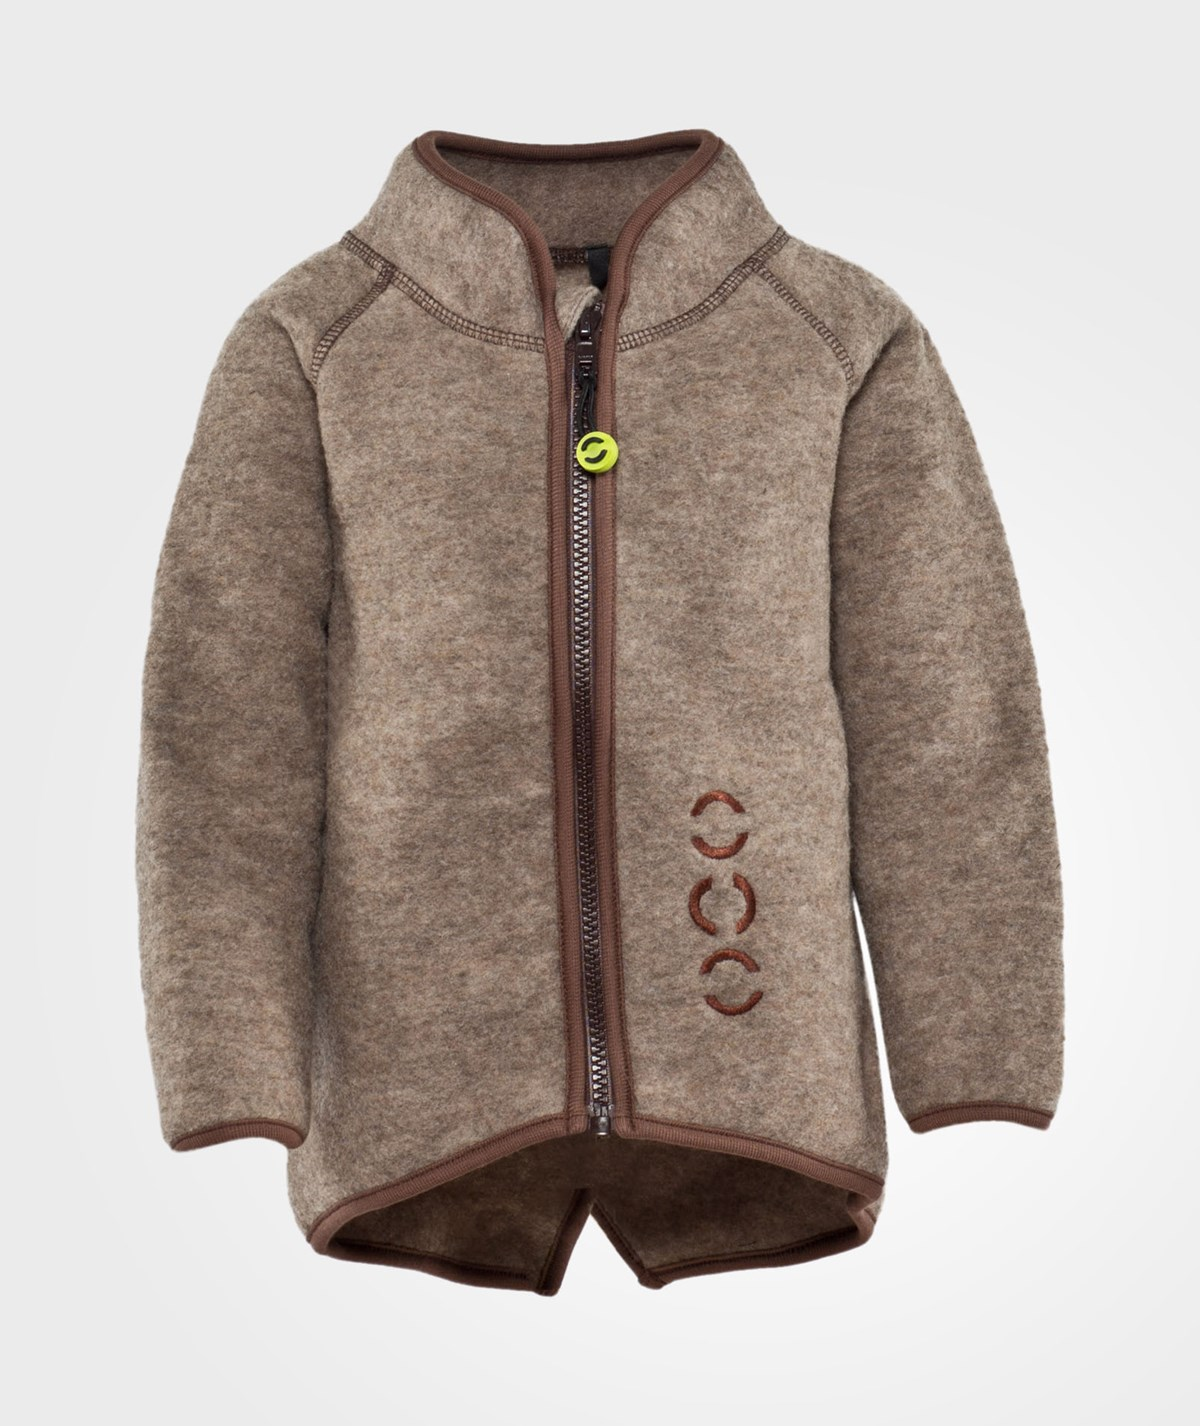 Mikk Line Fleece Jacket Junior Wool Babyshop Com